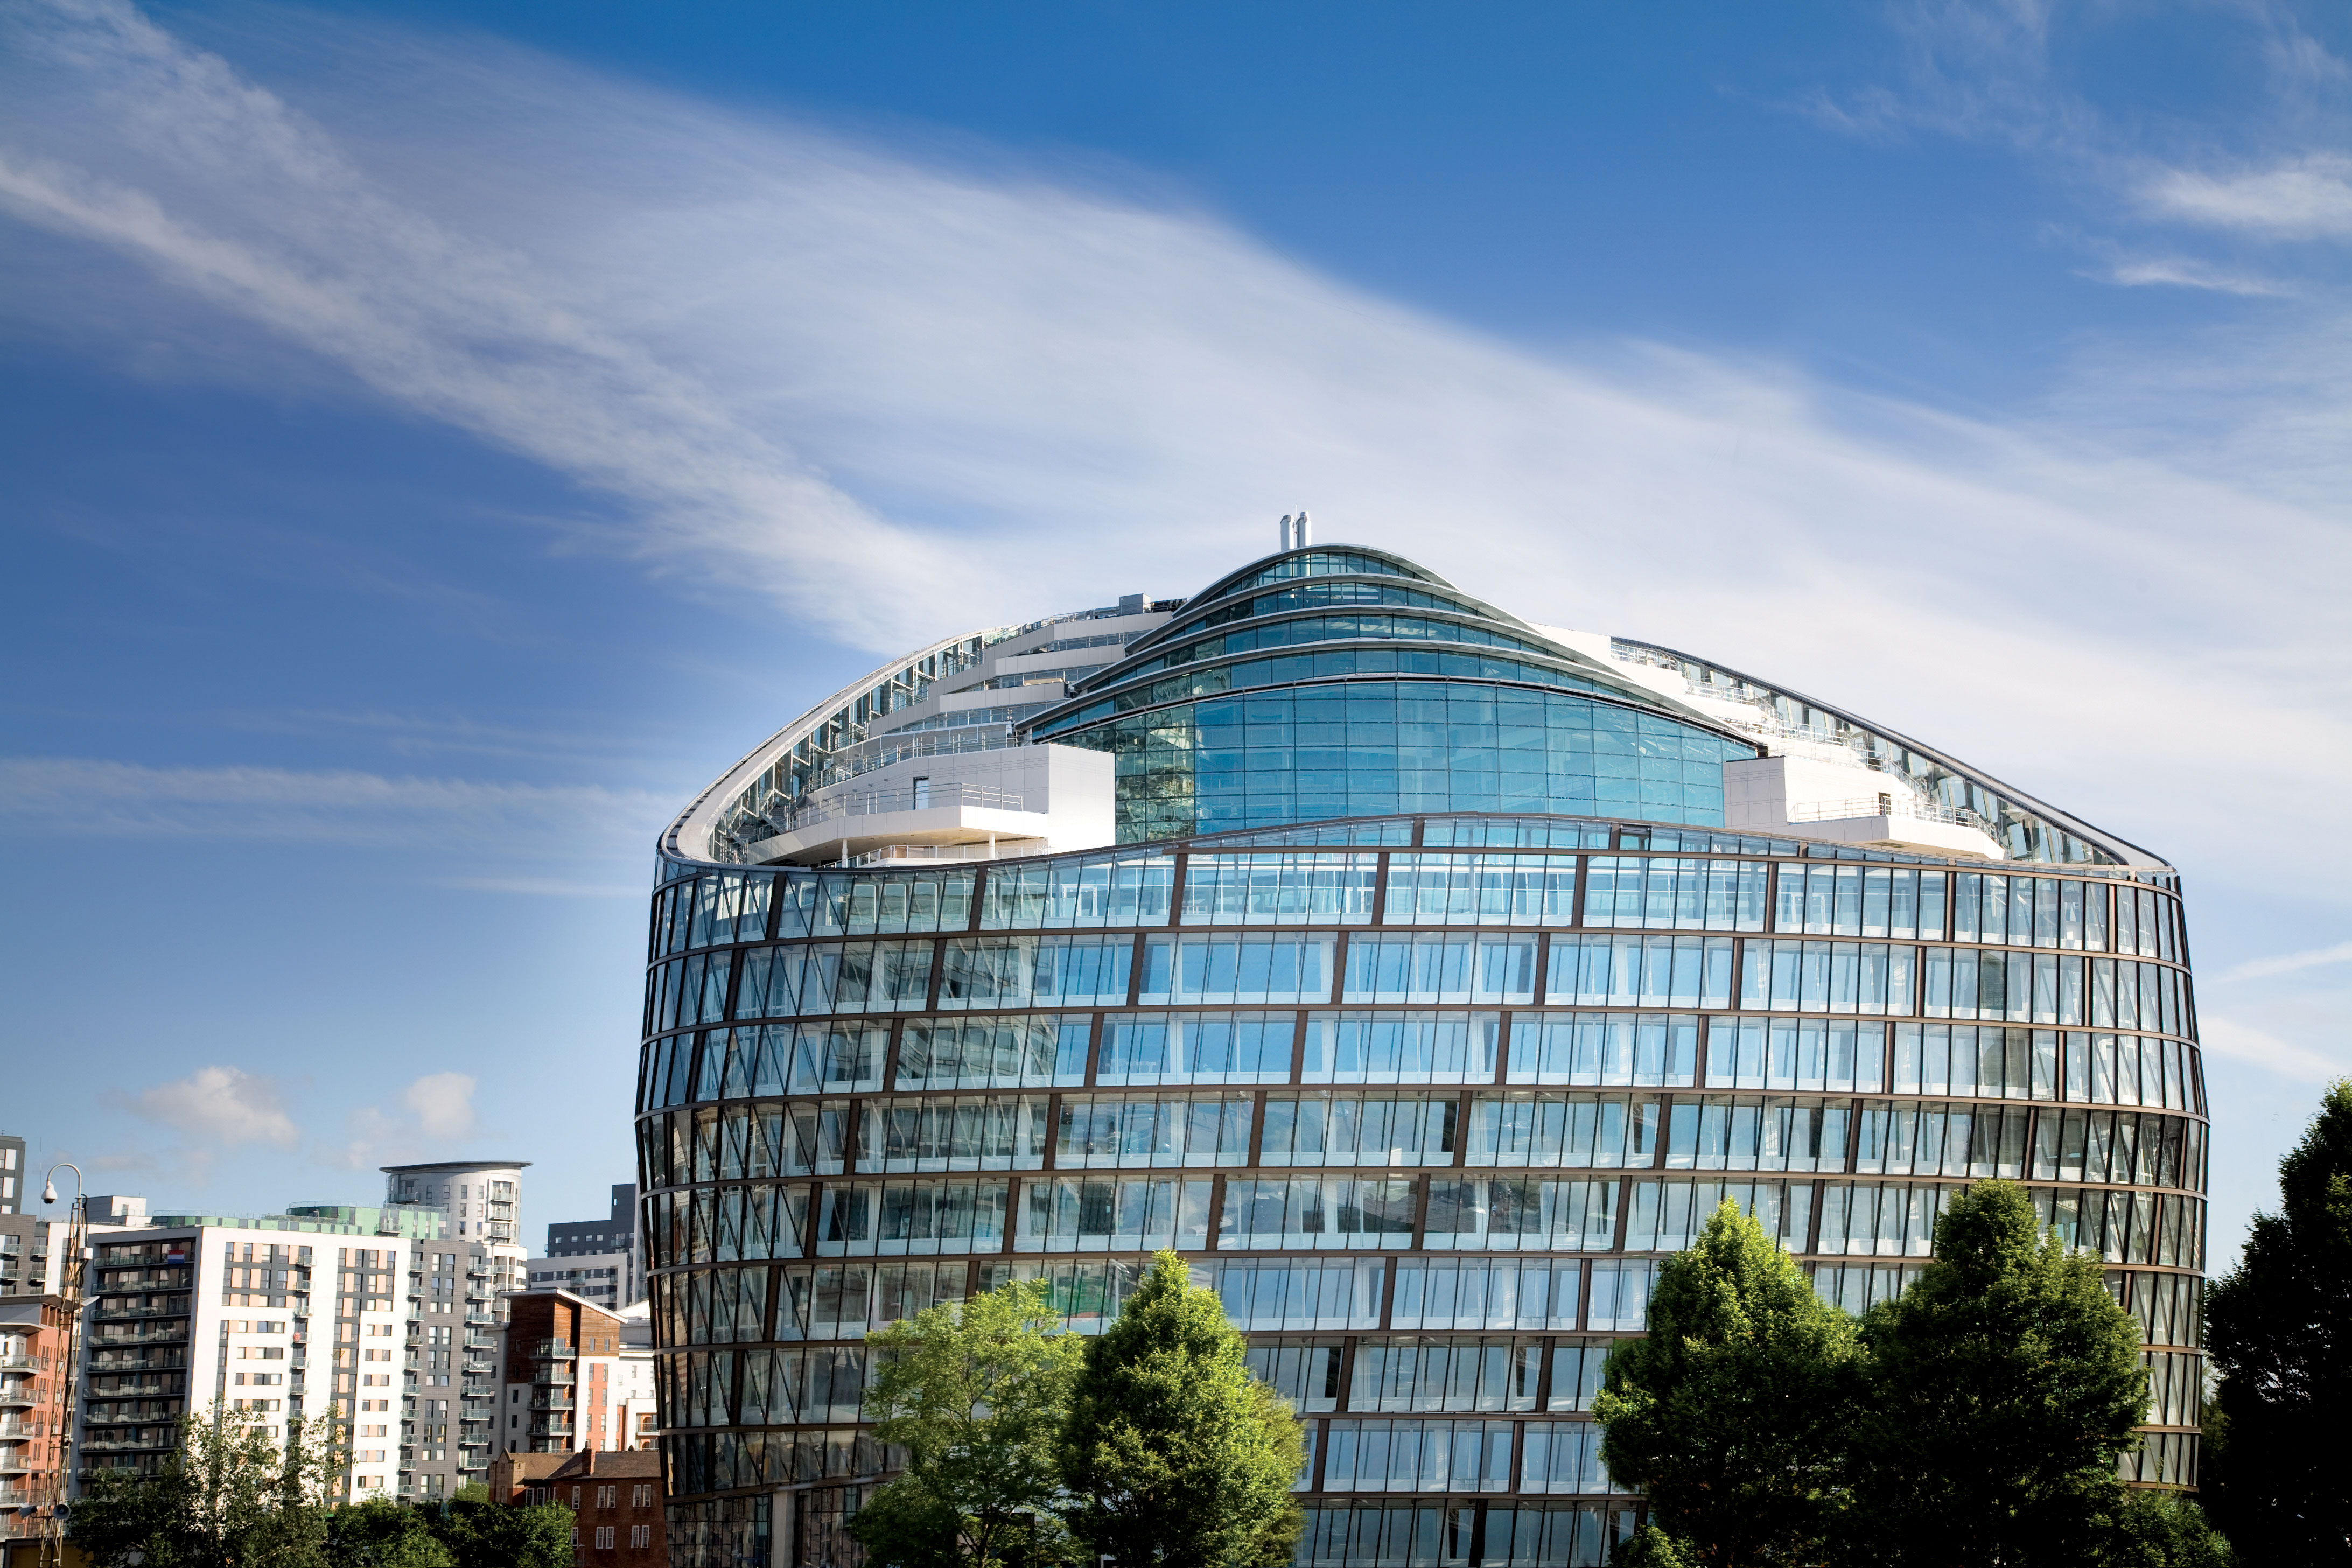 """1 Angel Square in Manchester, England has been promoted as the most """"environmentally friendly"""" office complex in the world."""